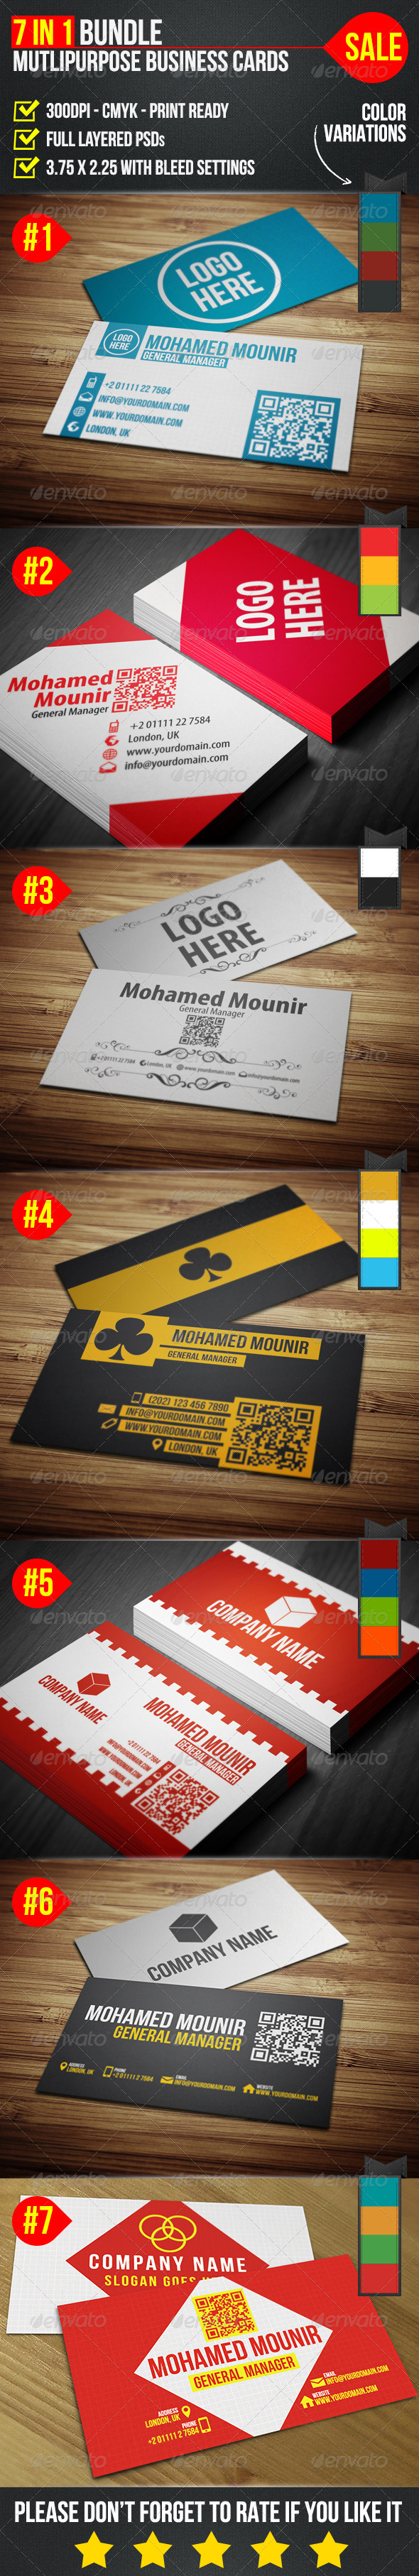 Multipurpose Business Cards Bundle - Business Cards Print Templates